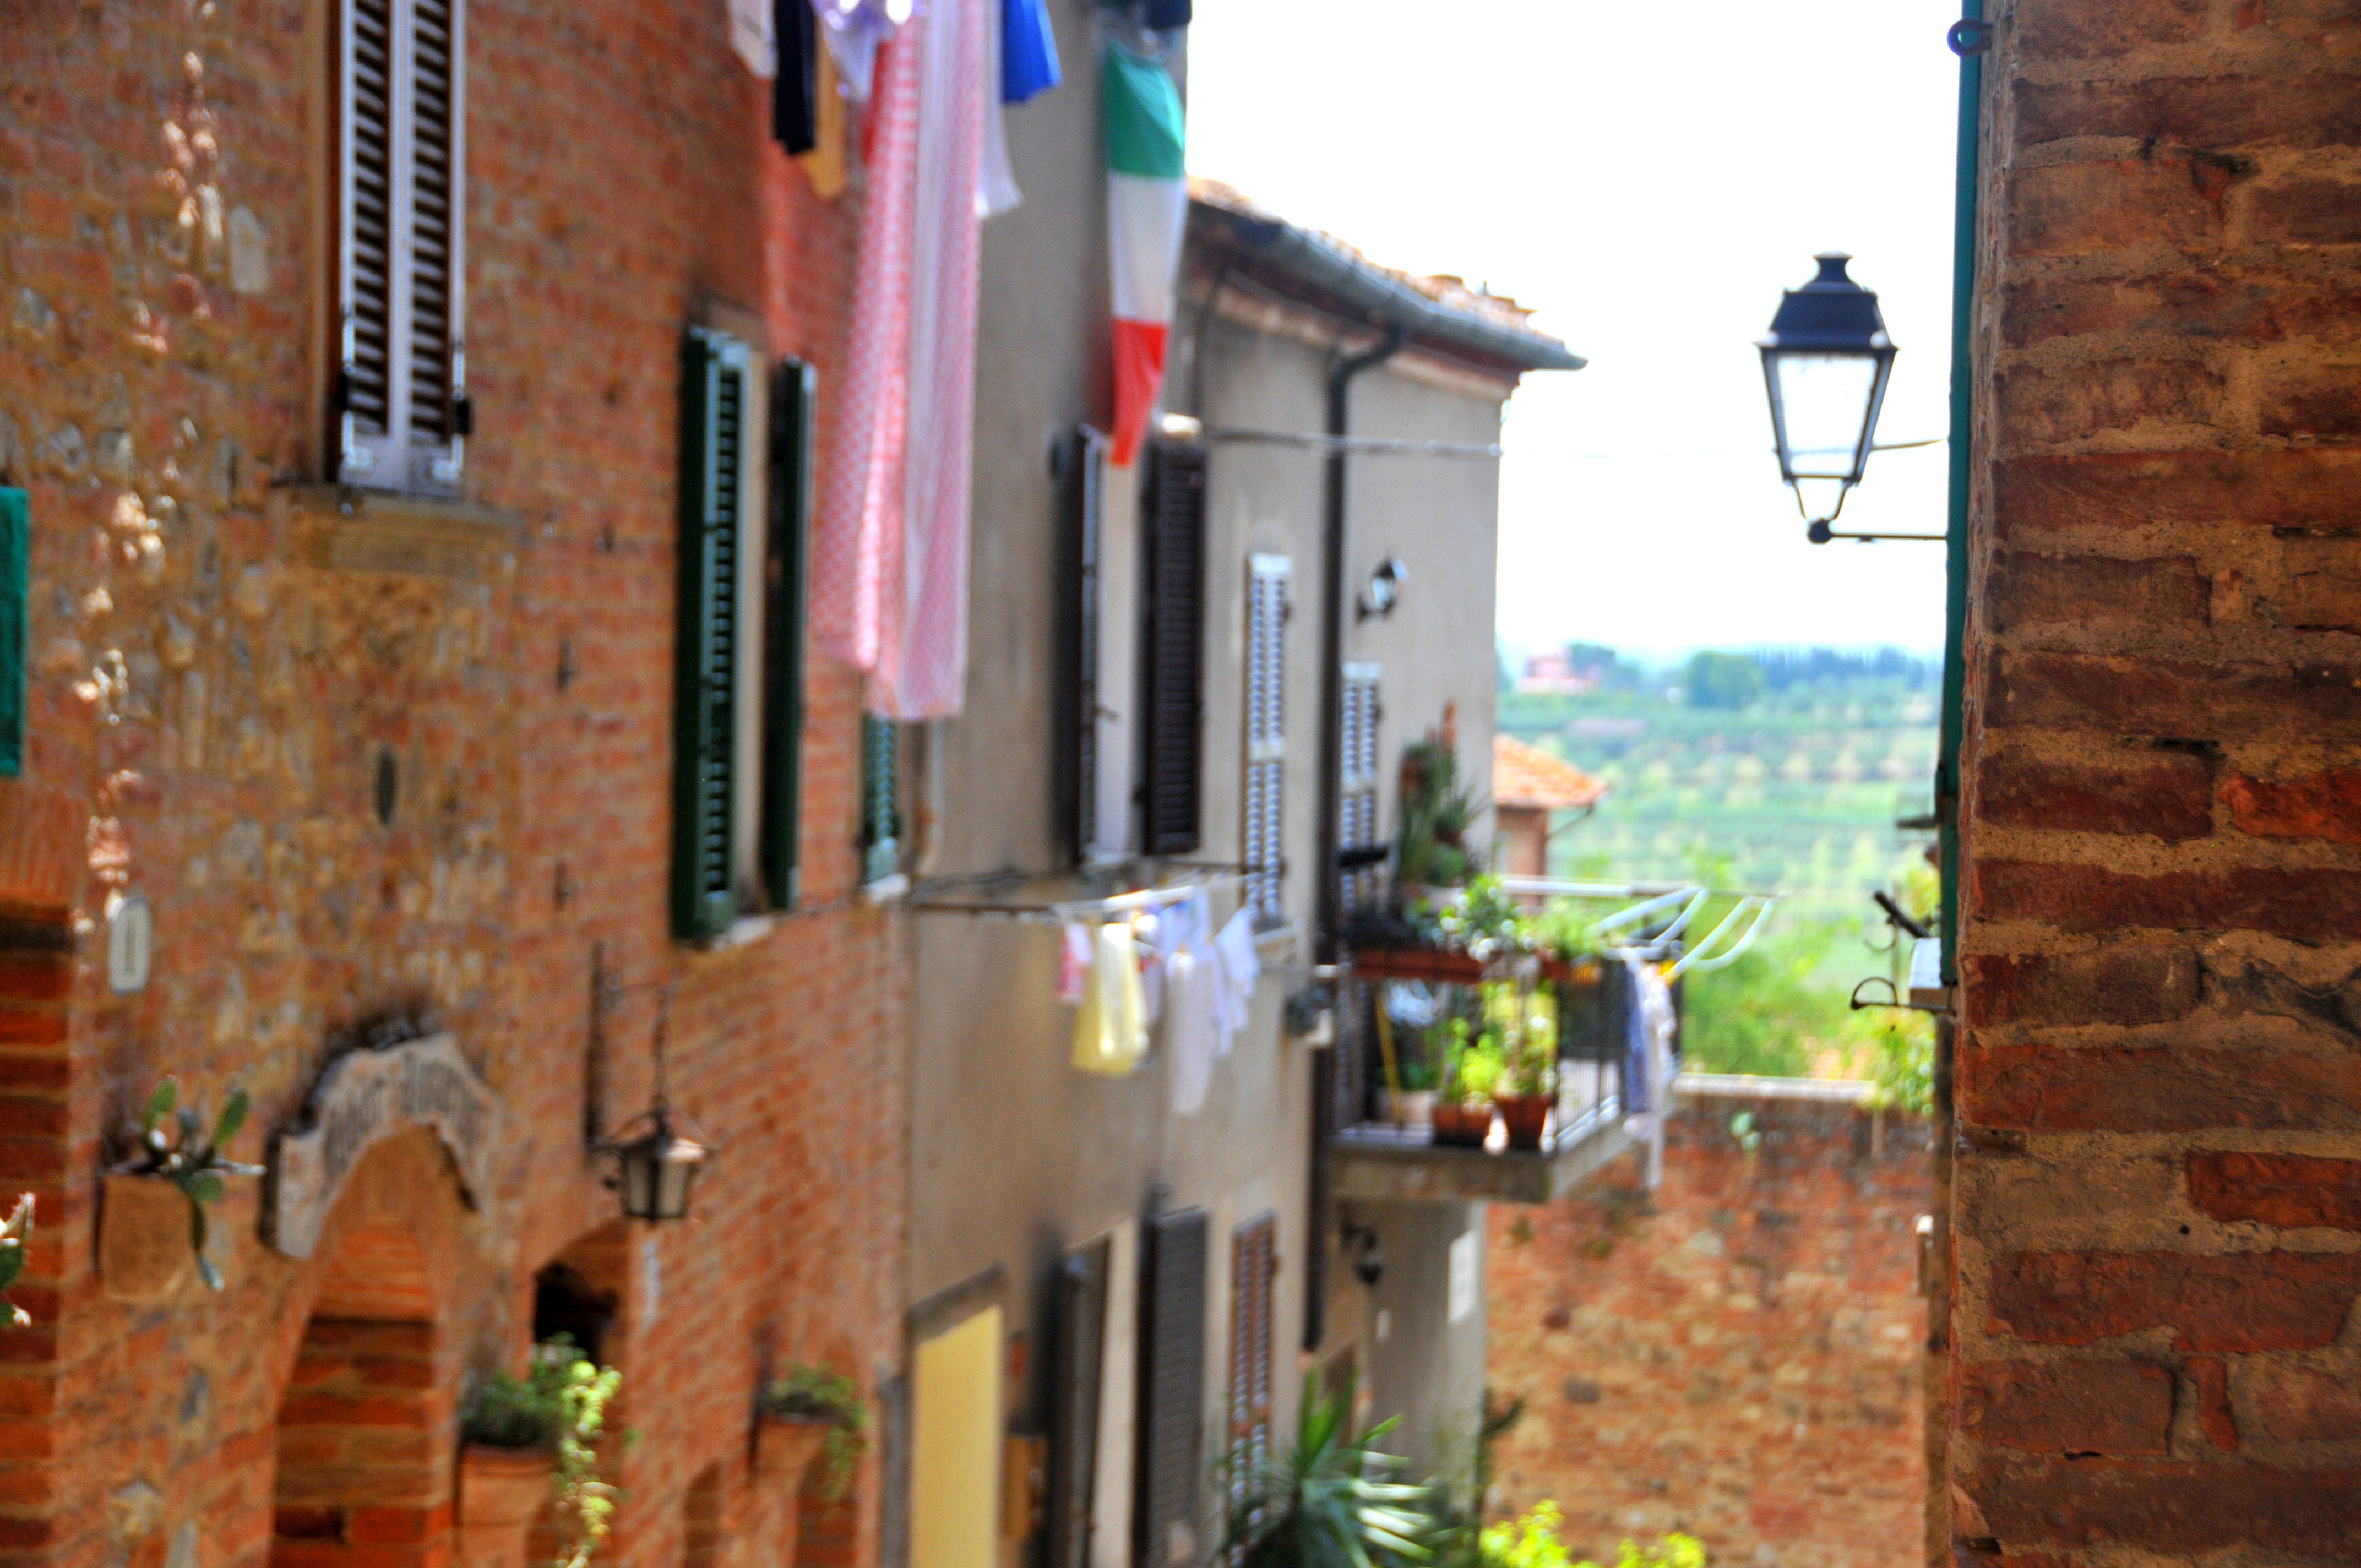 Image of an unspoilt hill town in tuscany showing the town houses in red brick with shuttered windows and the laundry hanging out to dry from balconies in the distance fields and olive groves